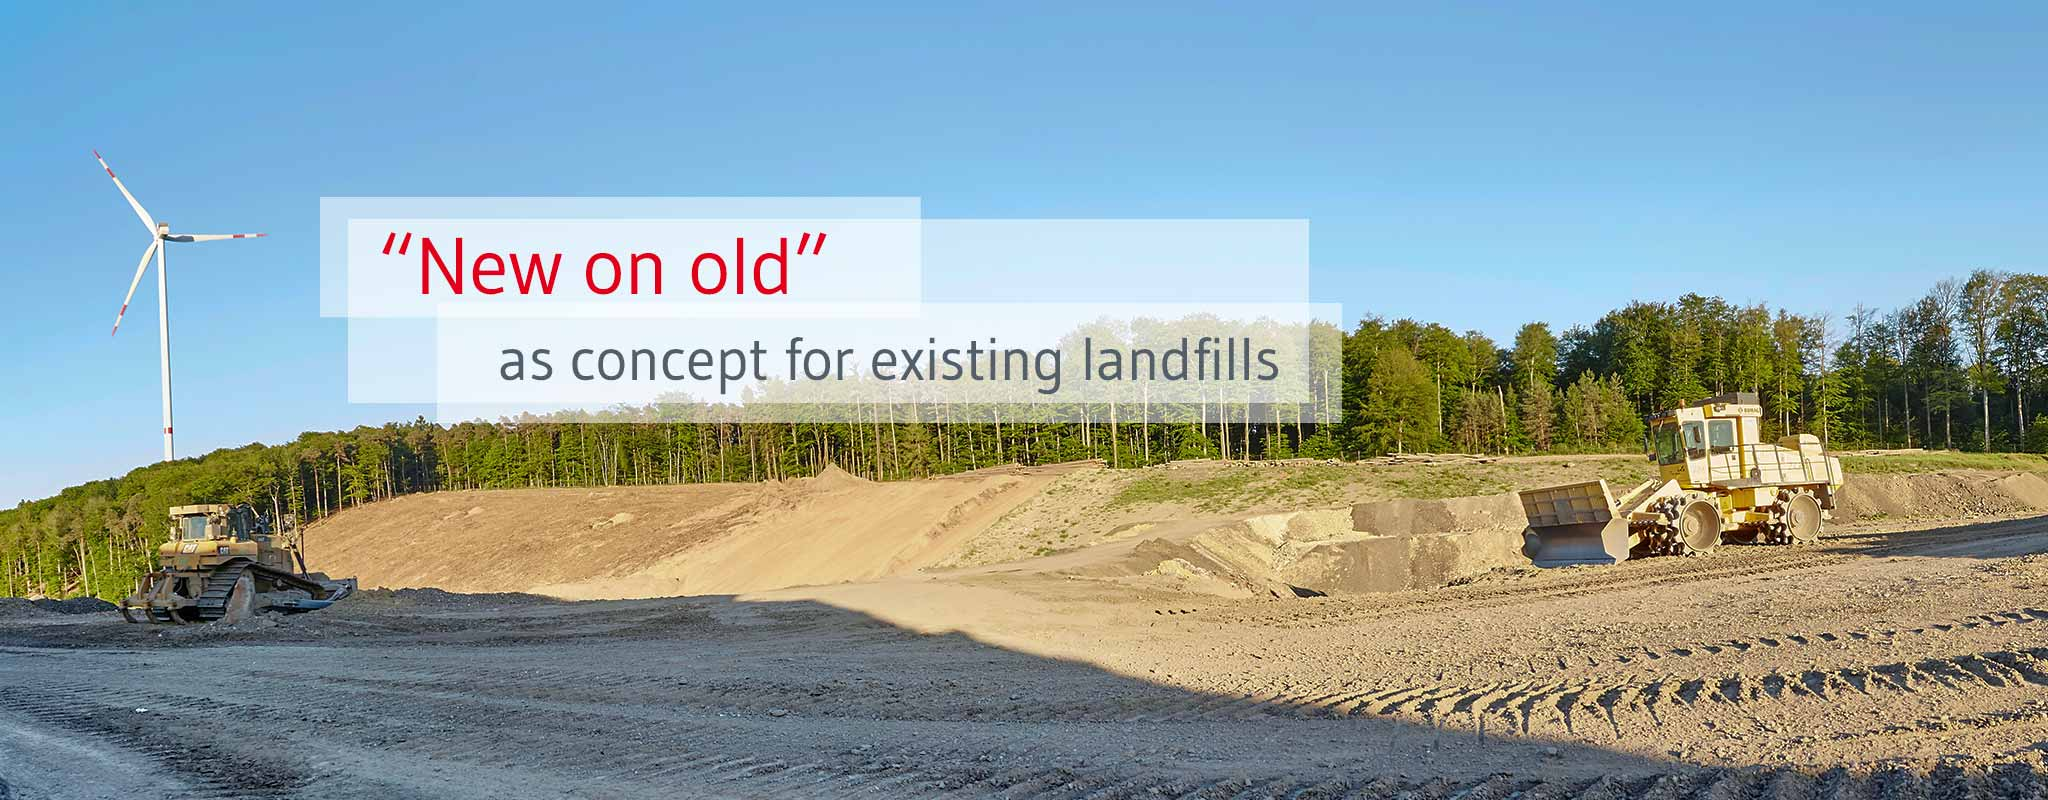 Landfill construction: New on existing